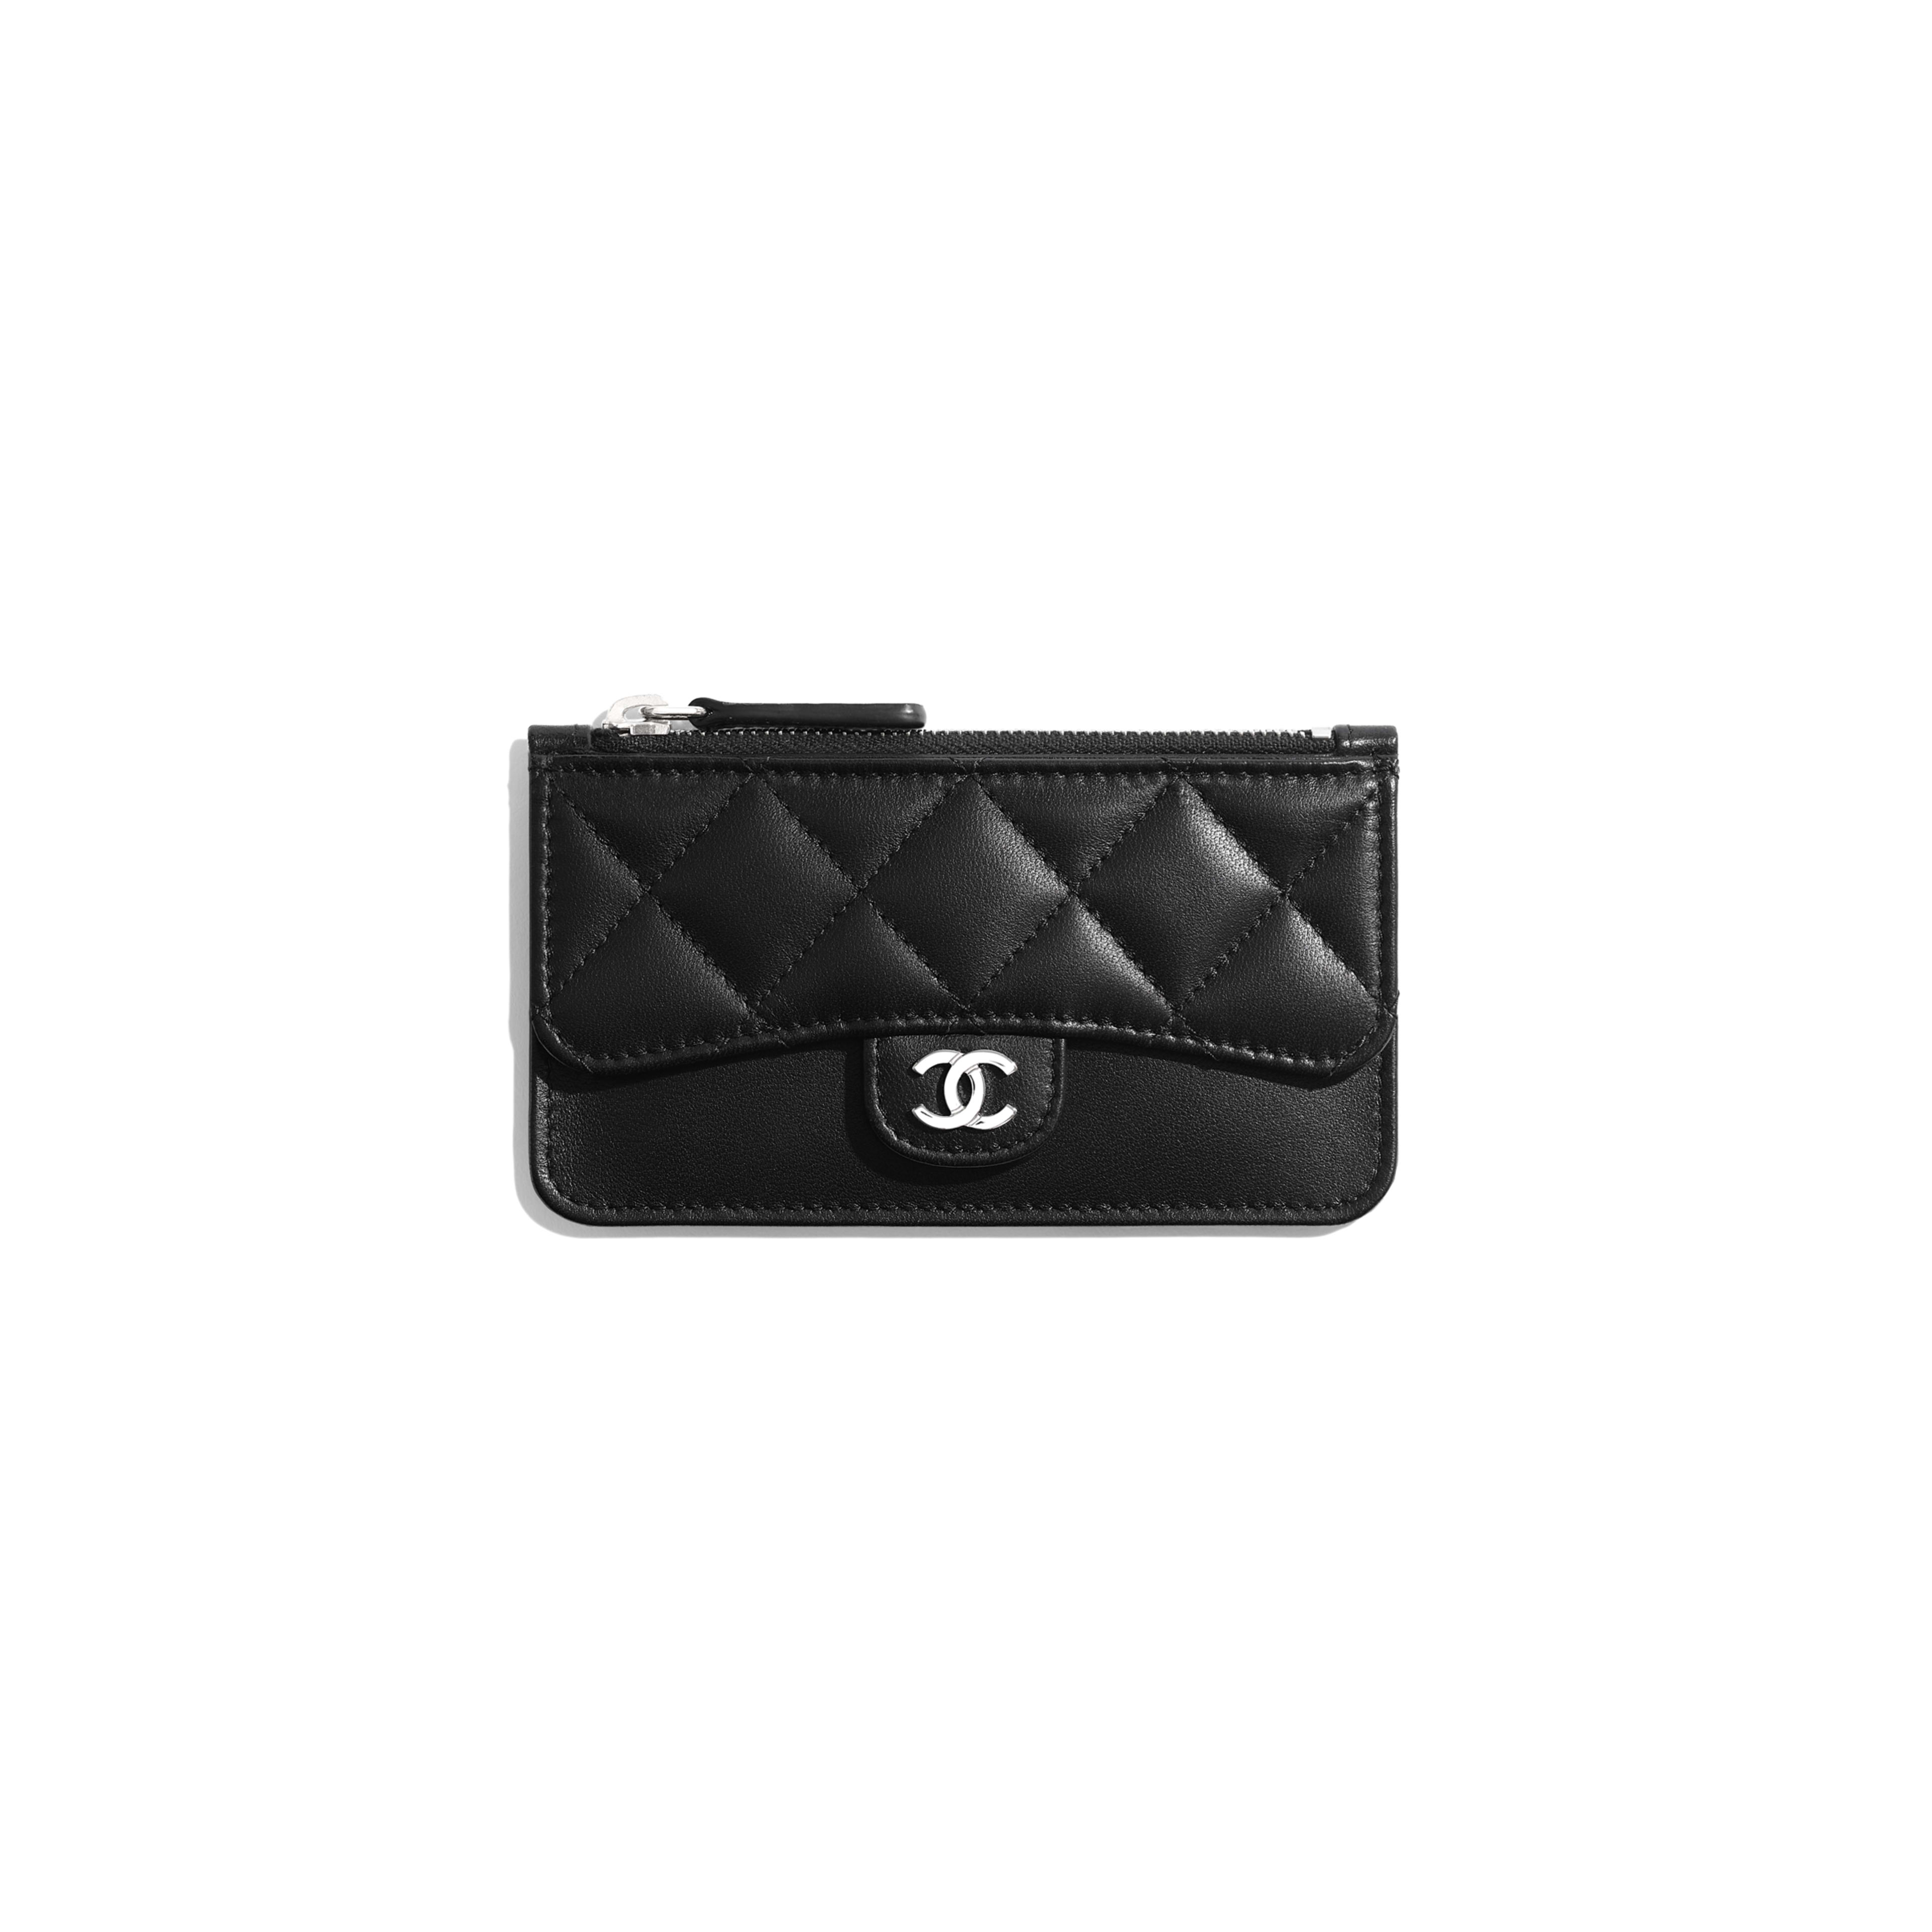 Classic Card Holder - Black - Lambskin - Default view - see full sized version